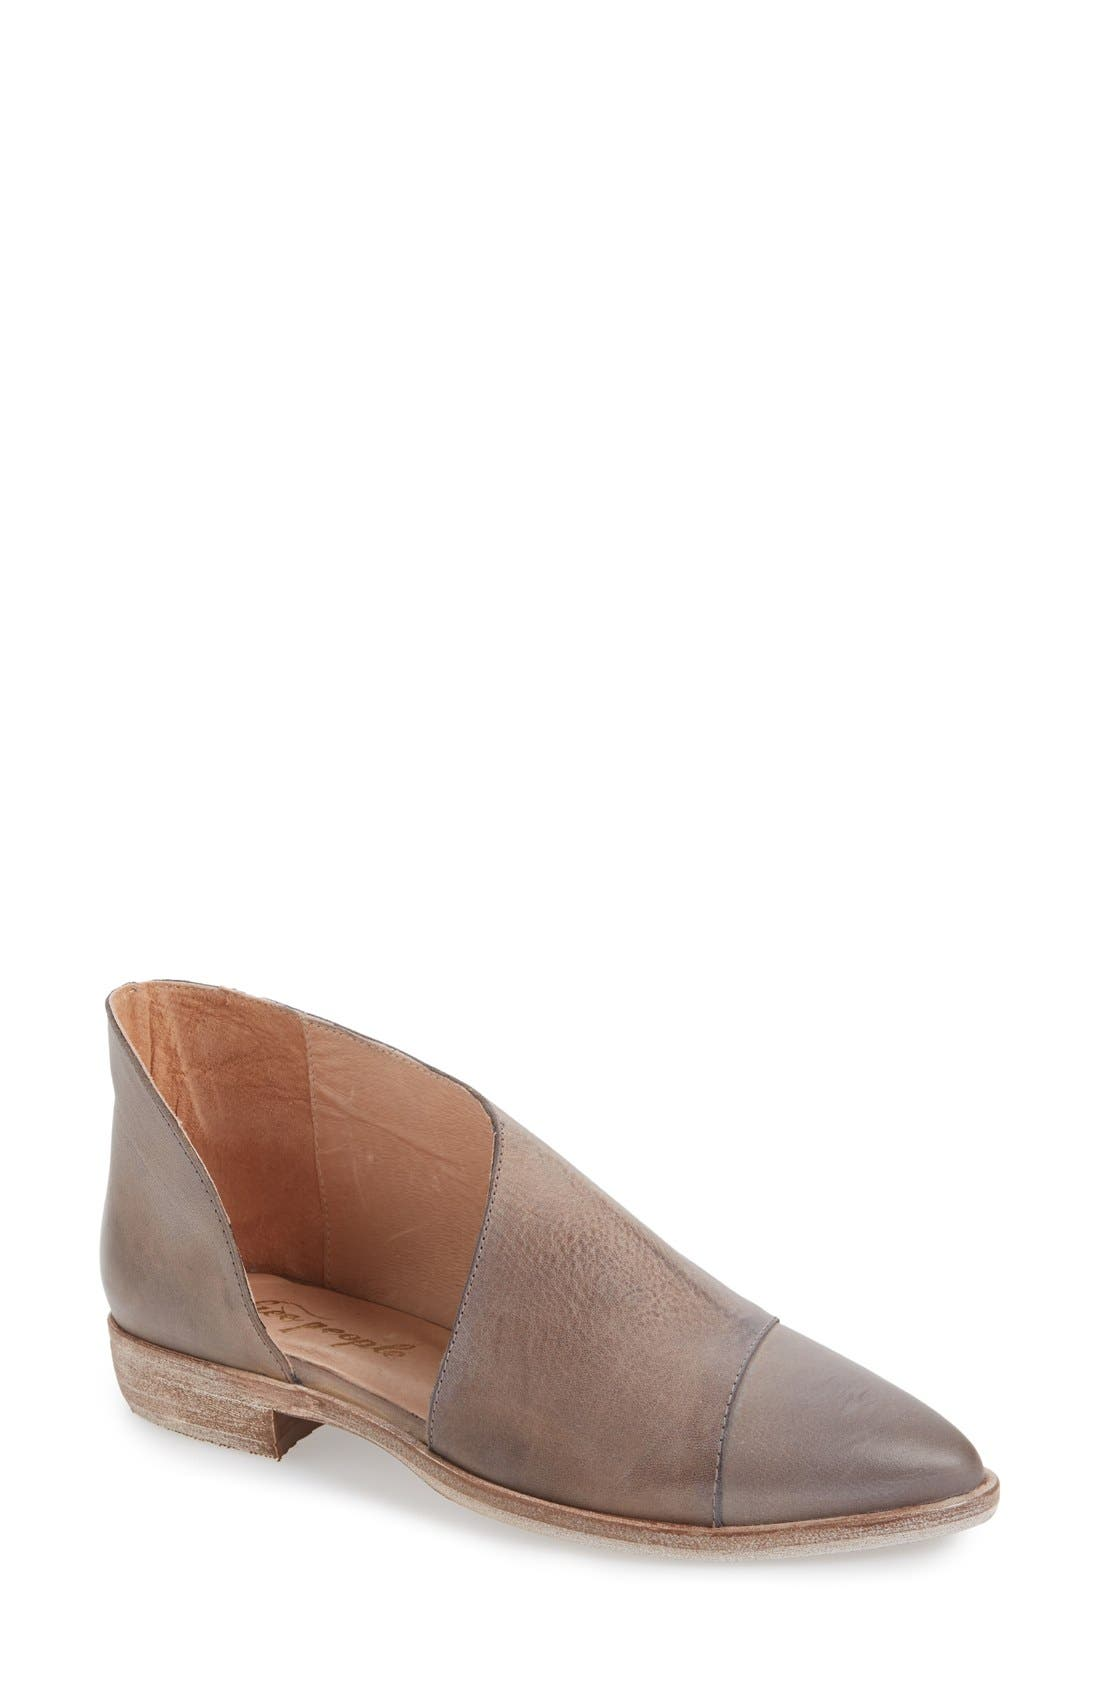 FREE PEOPLE 'Royale' Pointy Toe Flat, Main, color, GREY LEATHER